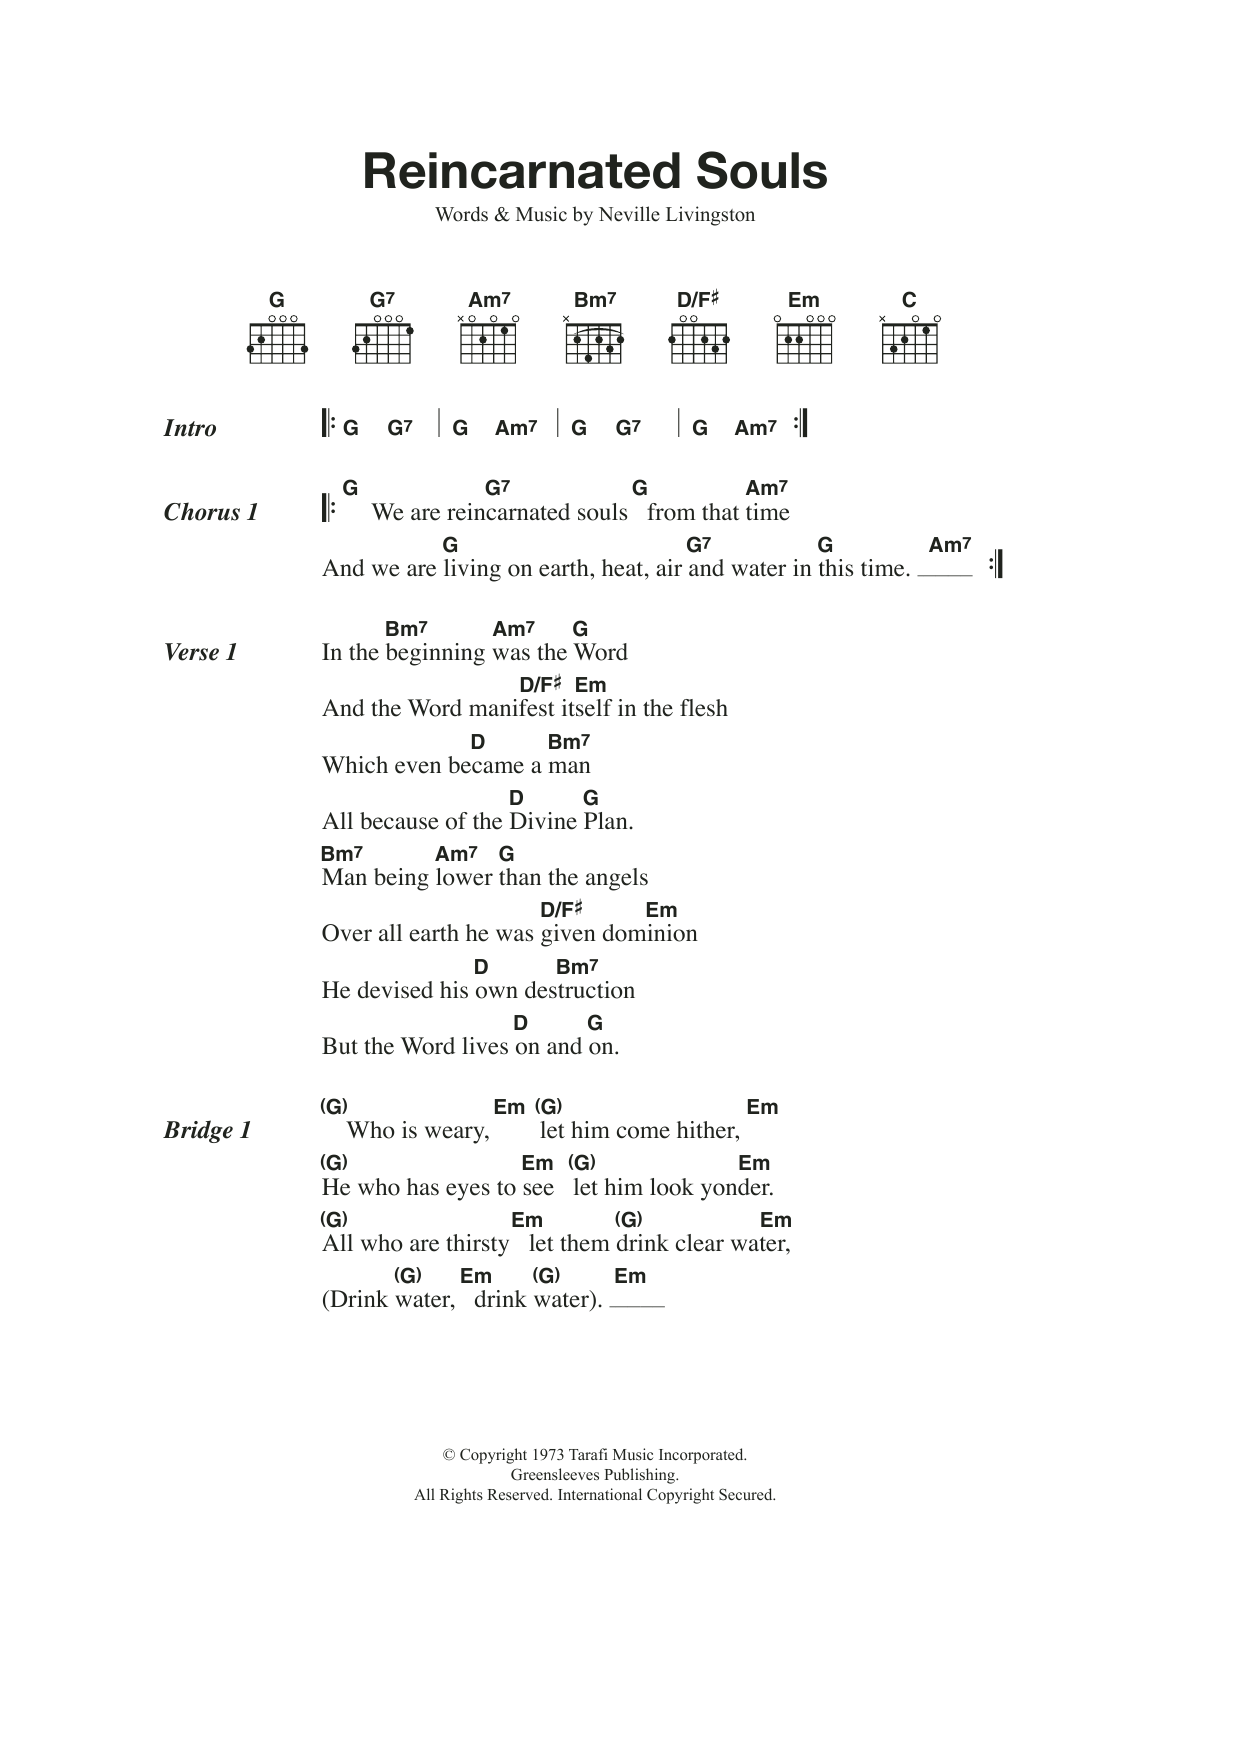 Reincarnated Souls Sheet Music